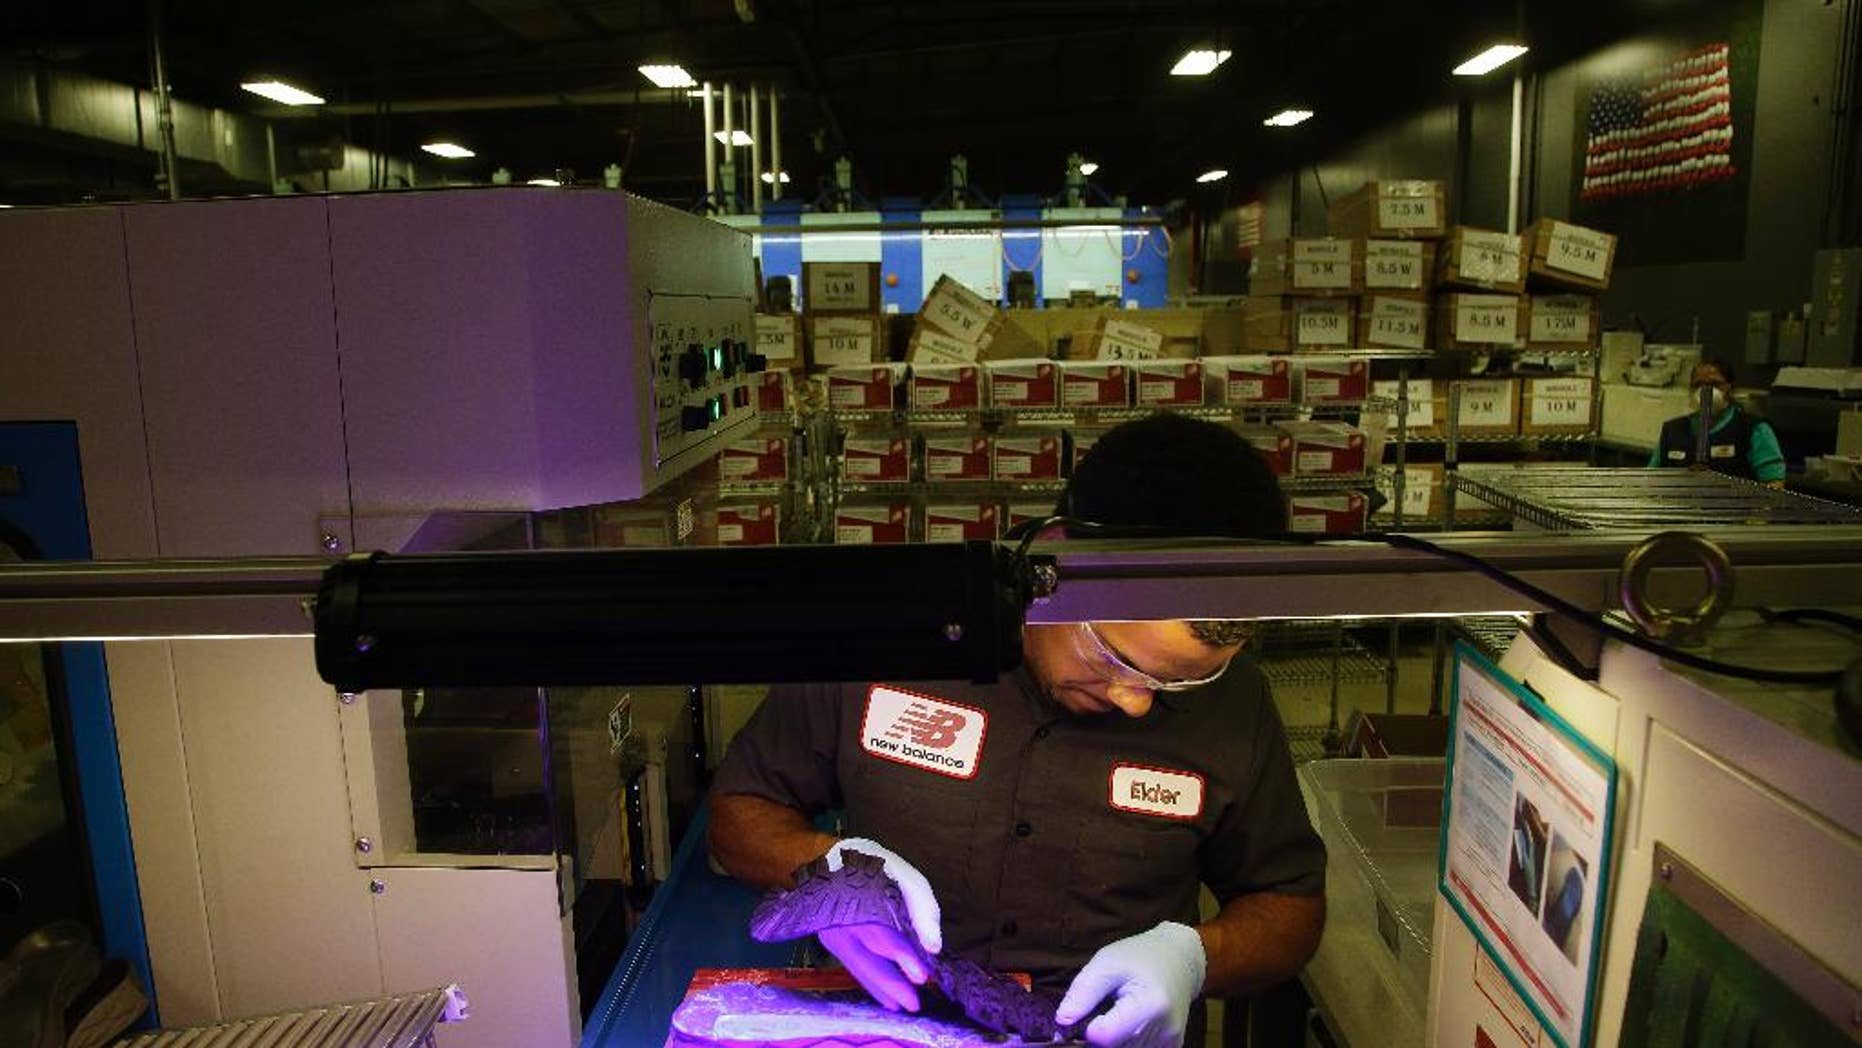 FILE - In this July 1, 2015 file photo, Elder Brandao, working under ultraviolet lights, glues an outsole to a midsole of the New Balance proposed 950v2 sneaker, that has passed military testing, at one of company's manufacturing facilities in Boston. The Institute for Supply Management, a trade group of purchasing managers, issues its index of manufacturing activity for August on Tuesday, Sept. 1, 2015. (AP Photo/Stephan Savoia, File)